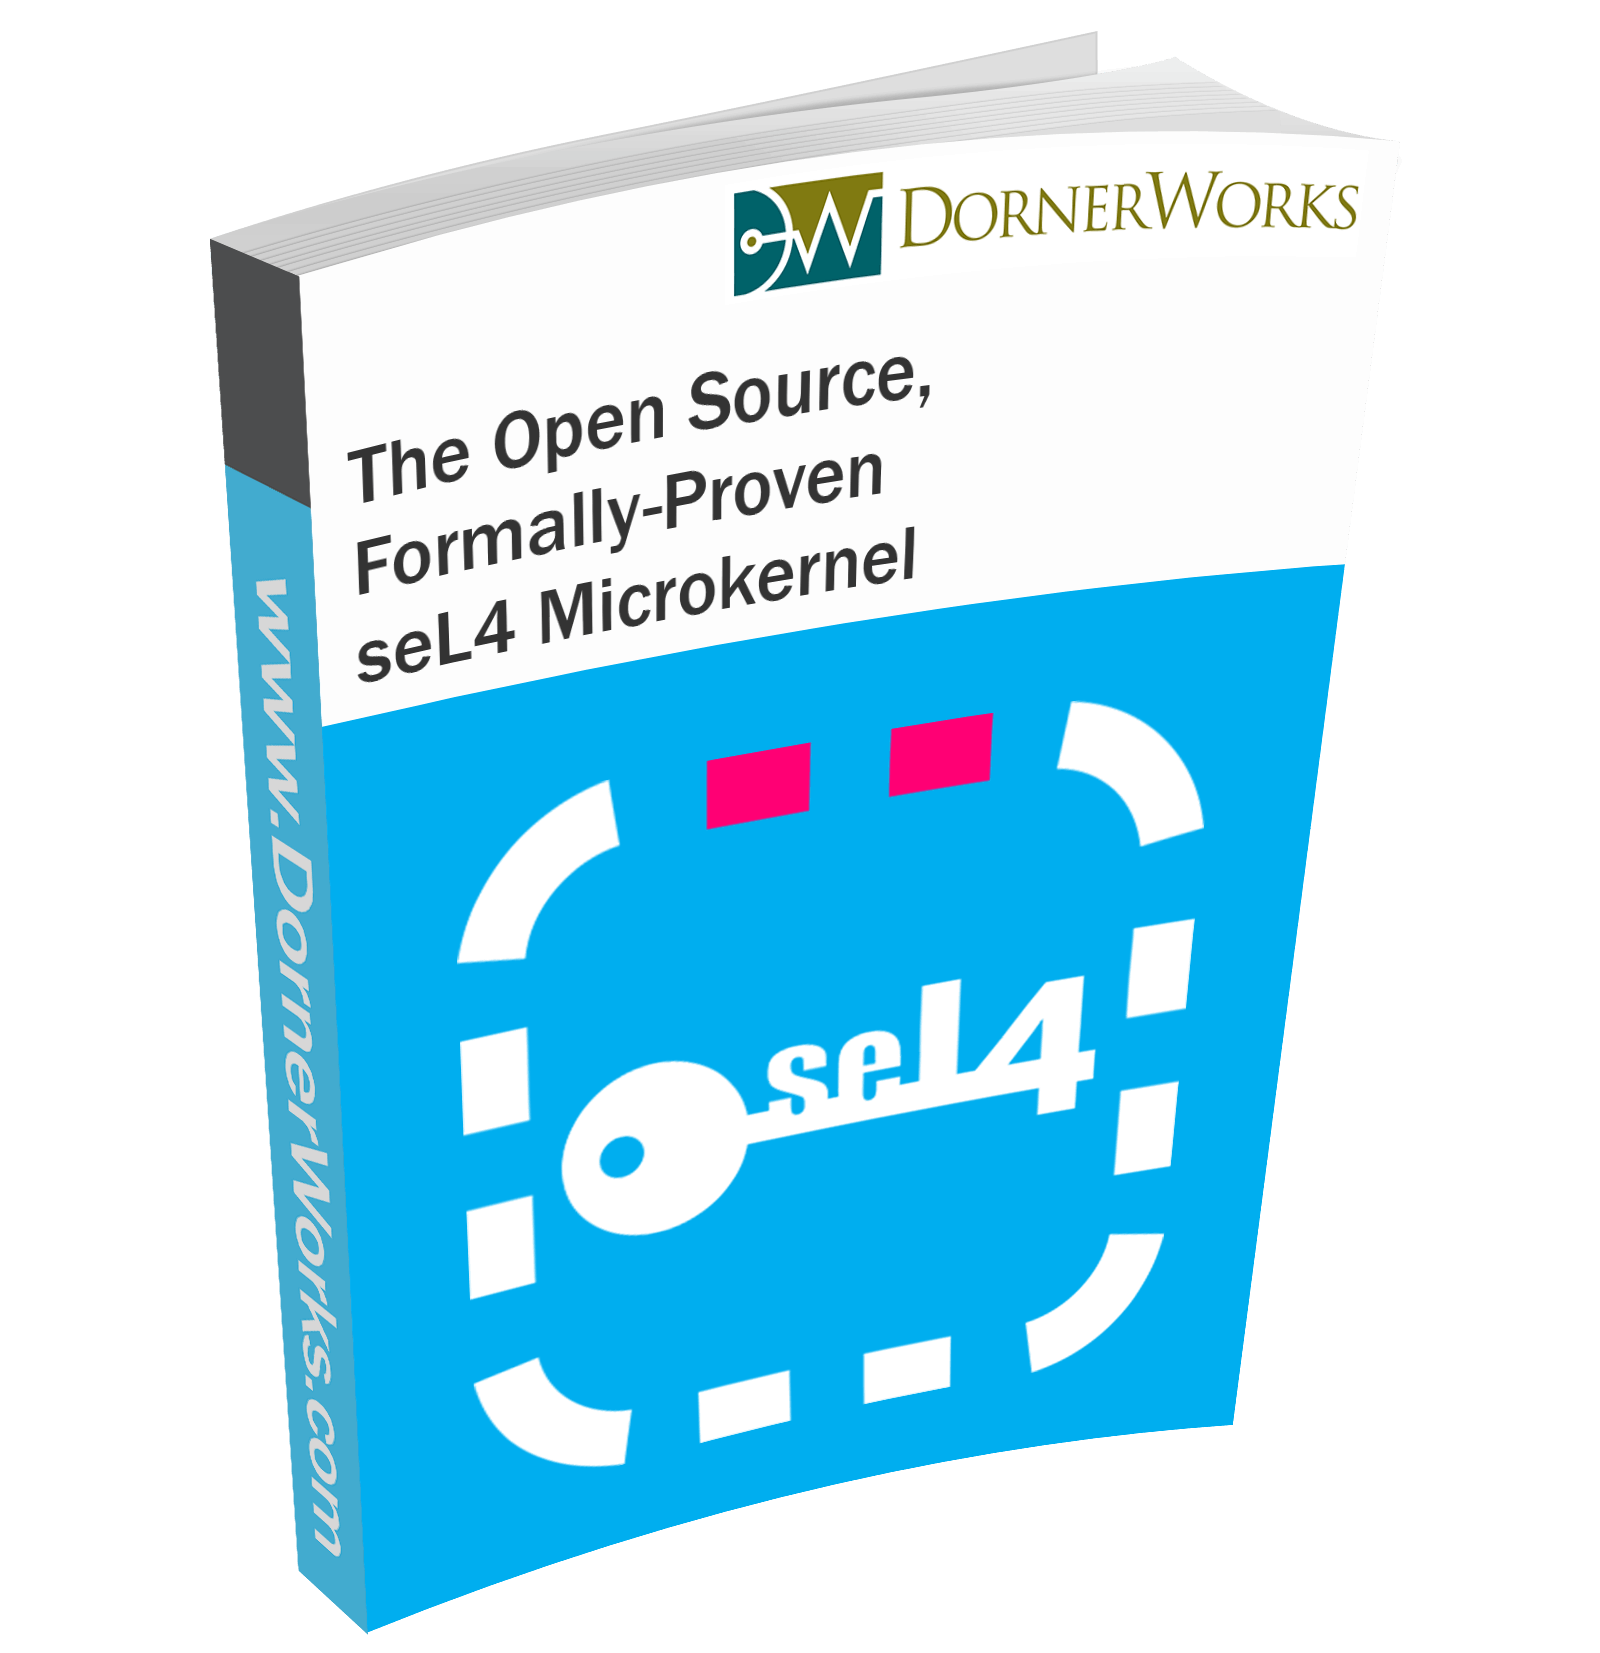 The Open Source, Formally-Proven seL4 Microkernel: Considerations for Use in Avionics